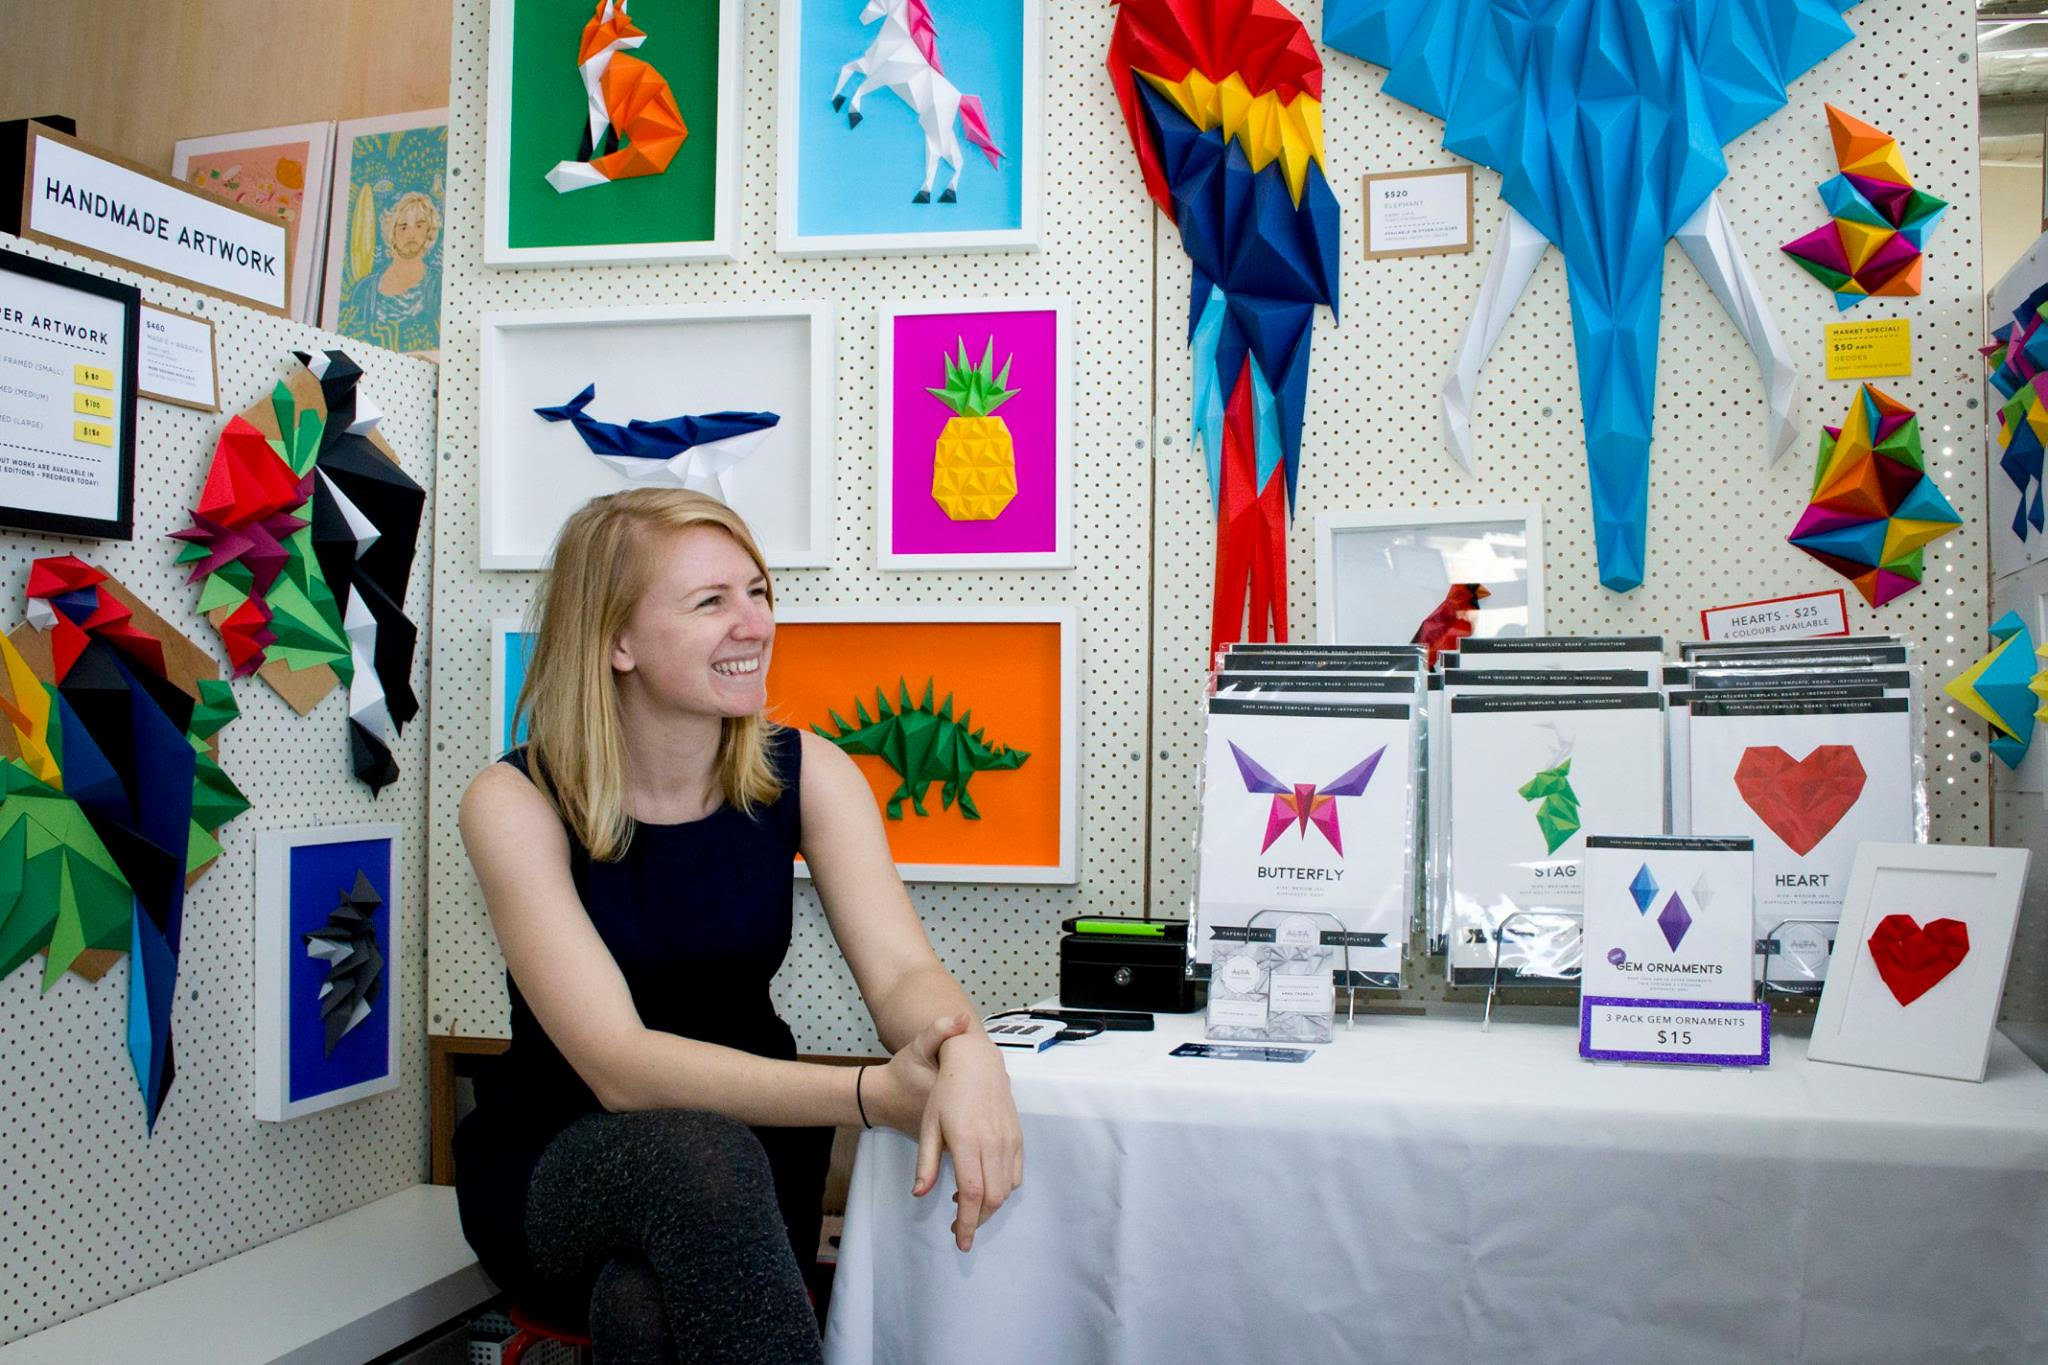 Origami workshop - GOST is pleased to be participating again in the DESIGN Canberra 2018 Festival from 5 - 25 November. This year we have partnered with the fabulous artist Anna Trundle who makes paper craft objects & she will do a little workshop to show visitors how to make a small origami work. Visit here for more info on date & time.